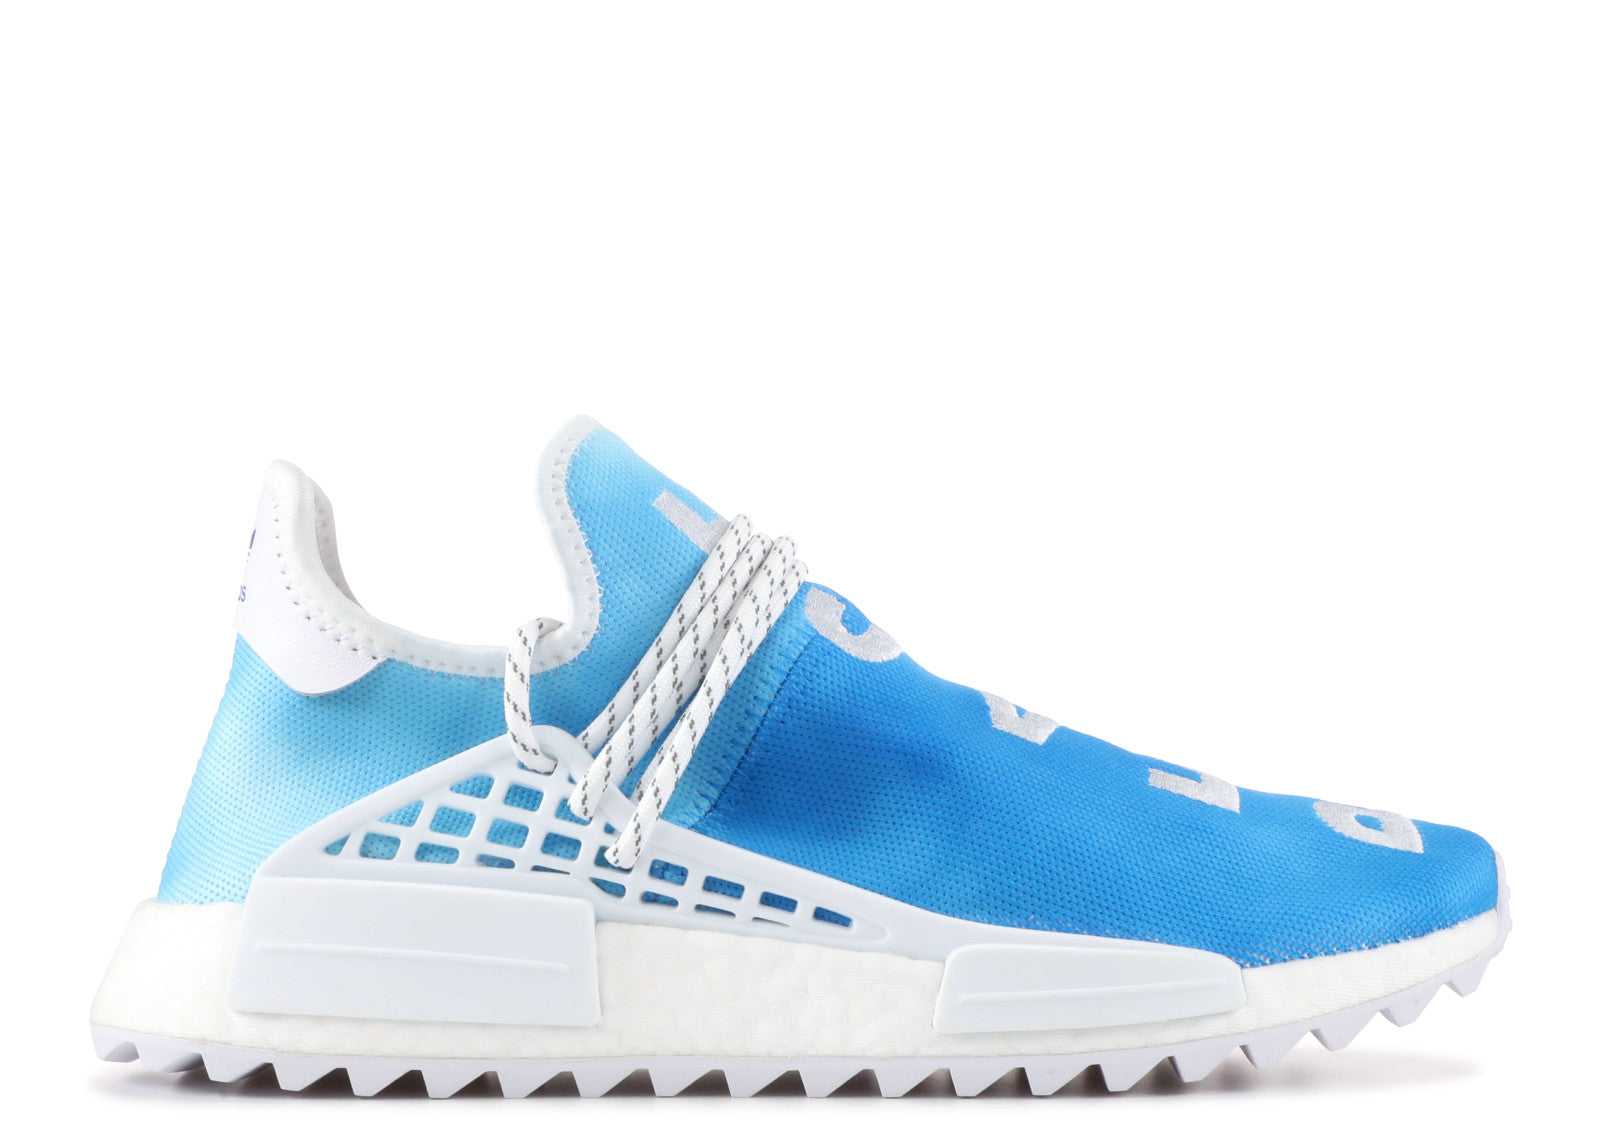 Adidas Human Race NMD Pharrell China Exclusive (Peace) - The